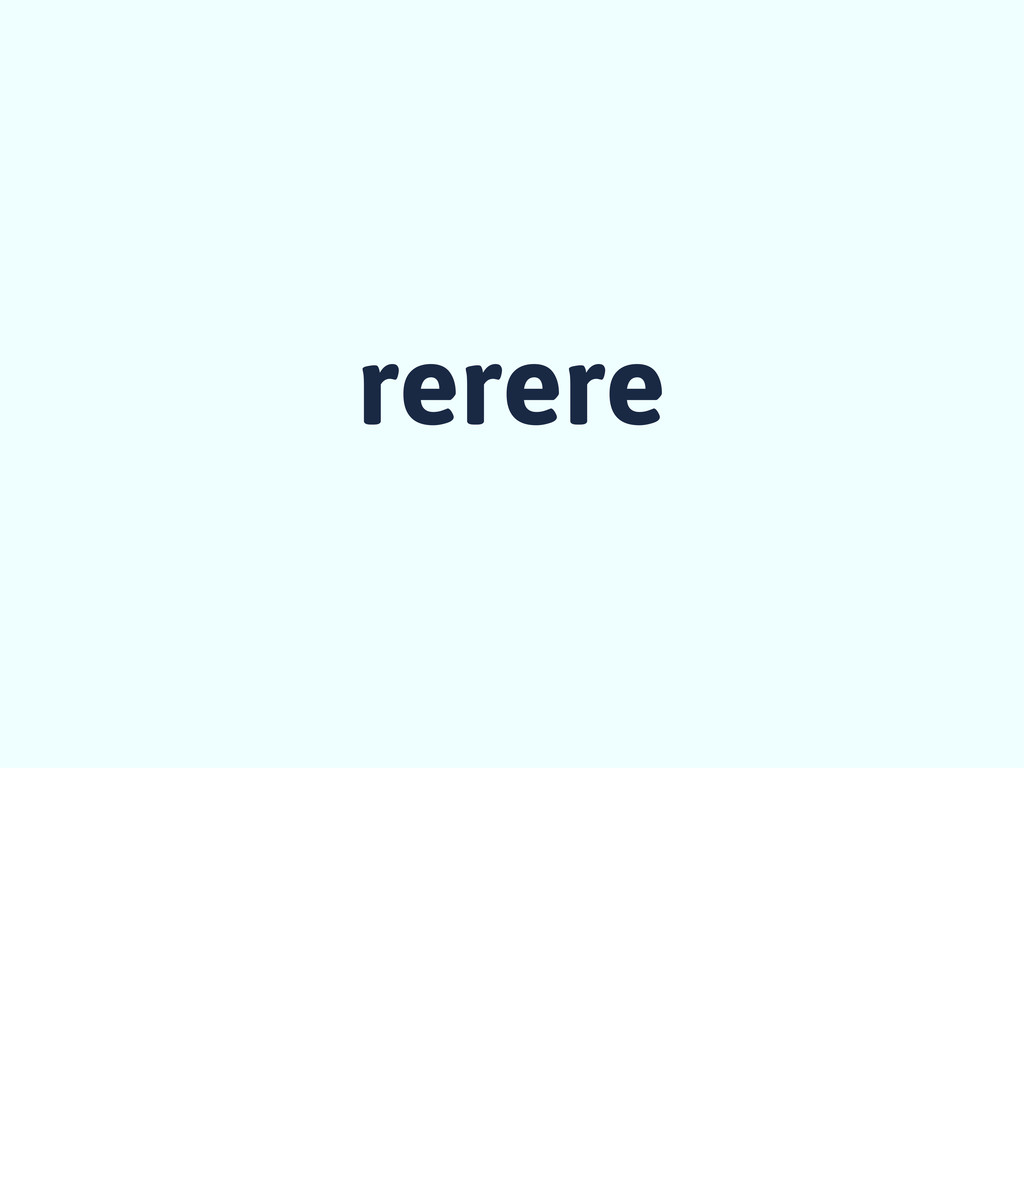 rerere